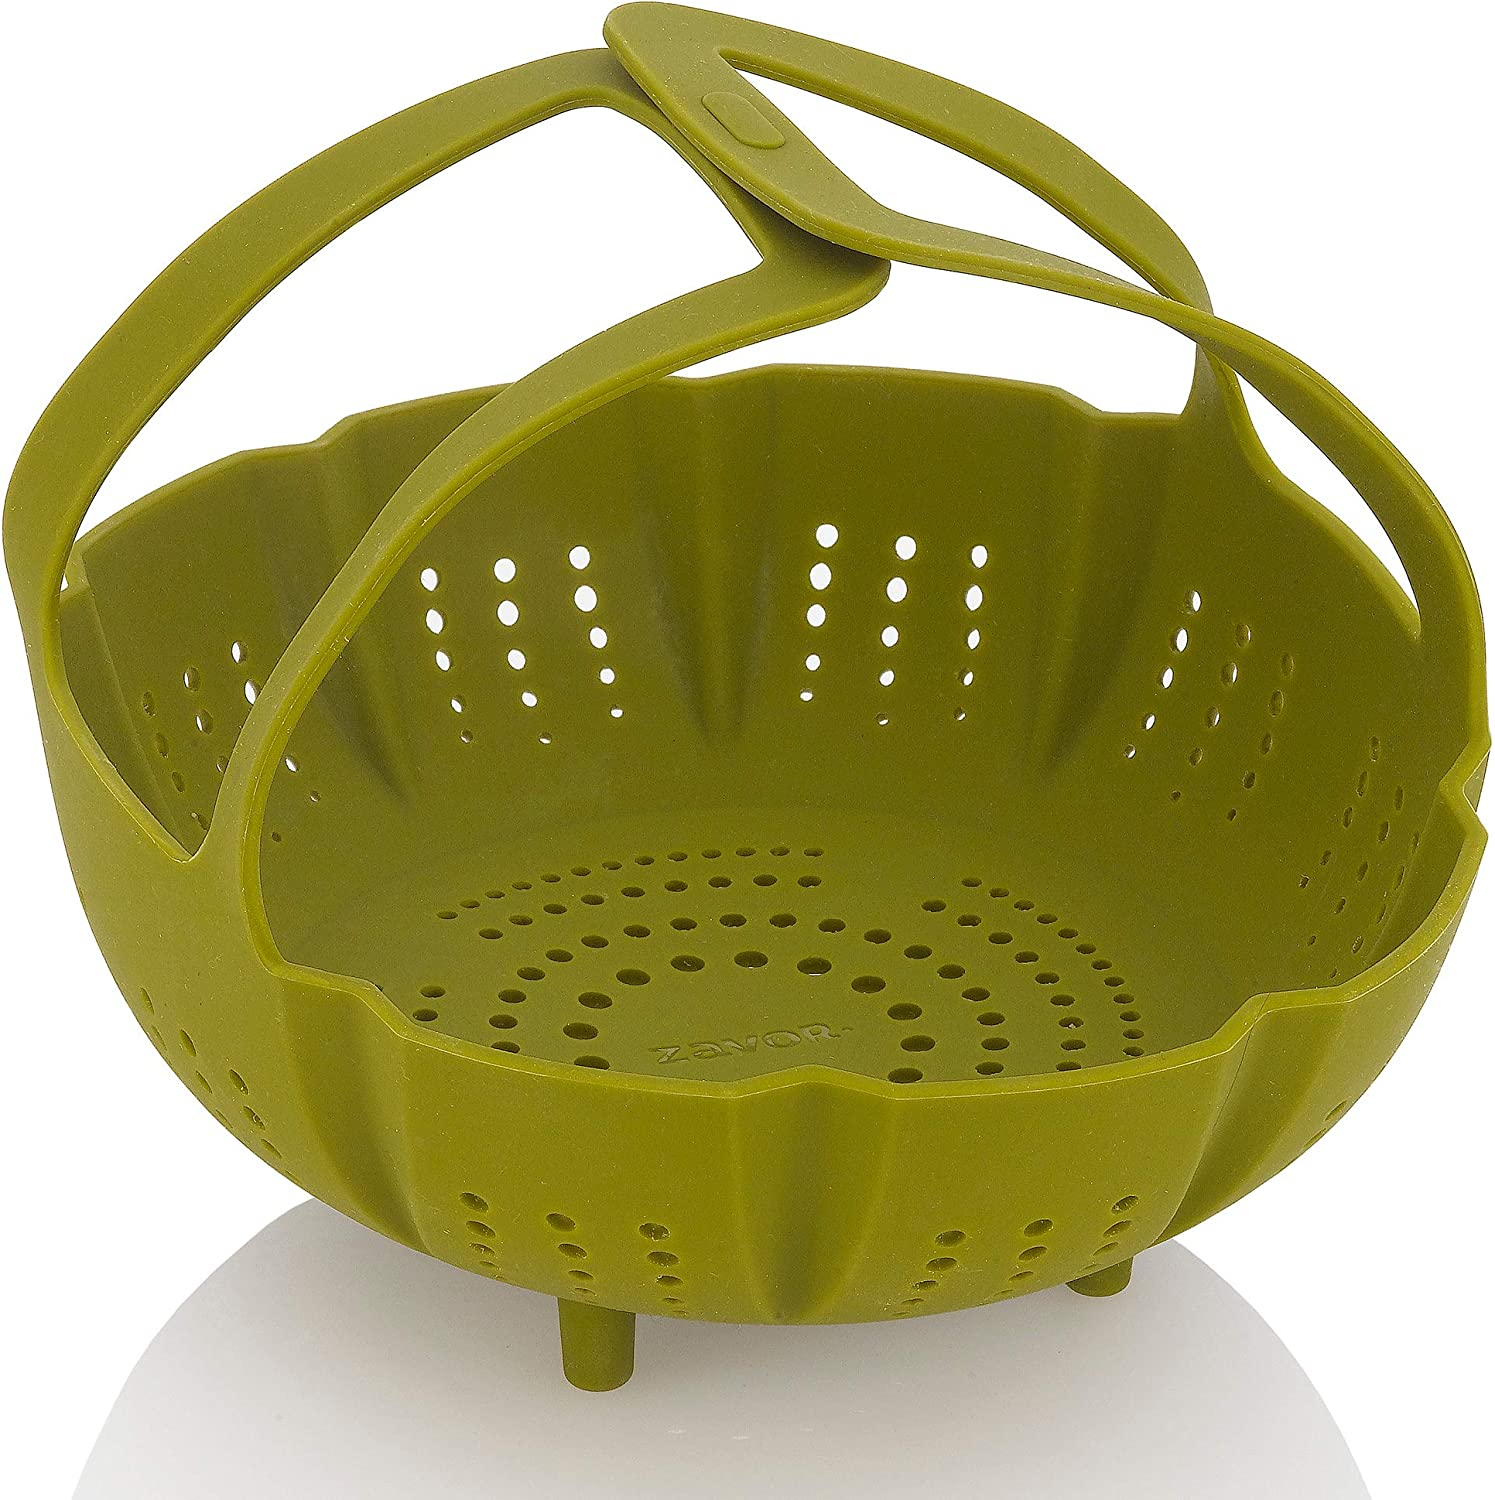 Zavor Silicone Steamer Basket & Strainer for 6Qt & Larger Pressure Cookers, Multicookers, Instant & Stock Pots | BPA-free, Non-scratch Pressure Cooker Accessories Collection, Green (ZACMISB22)